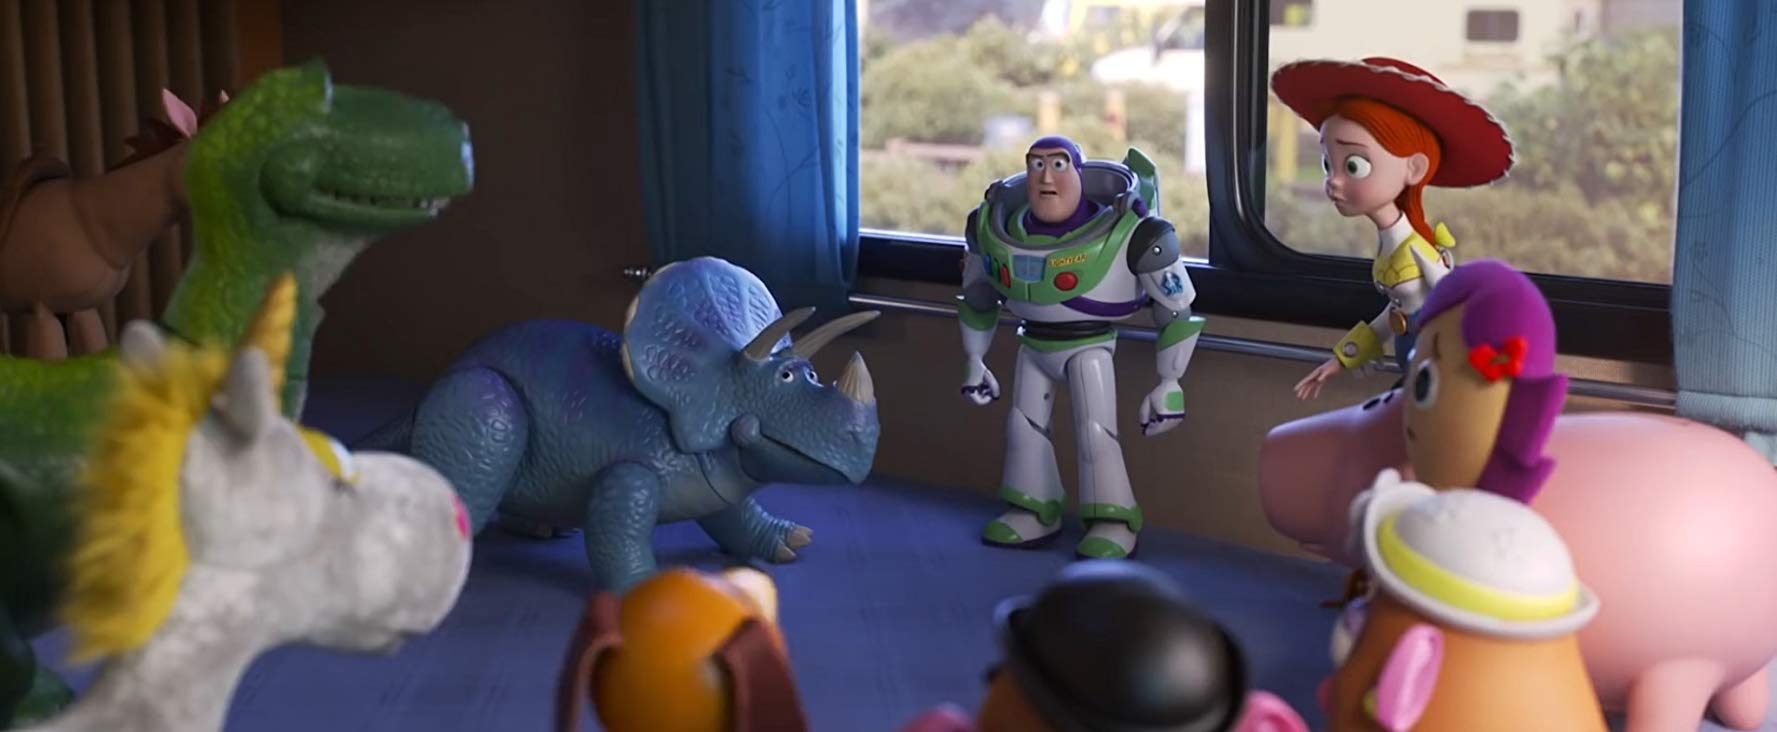 "Tim Allen, Wallace Shawn, Blake Clark, and Kristen Schaal in <a href=""https://entertainment.ie/cinema/movie-reviews/toy-story-4-394195/"">Toy Story 4</a>"